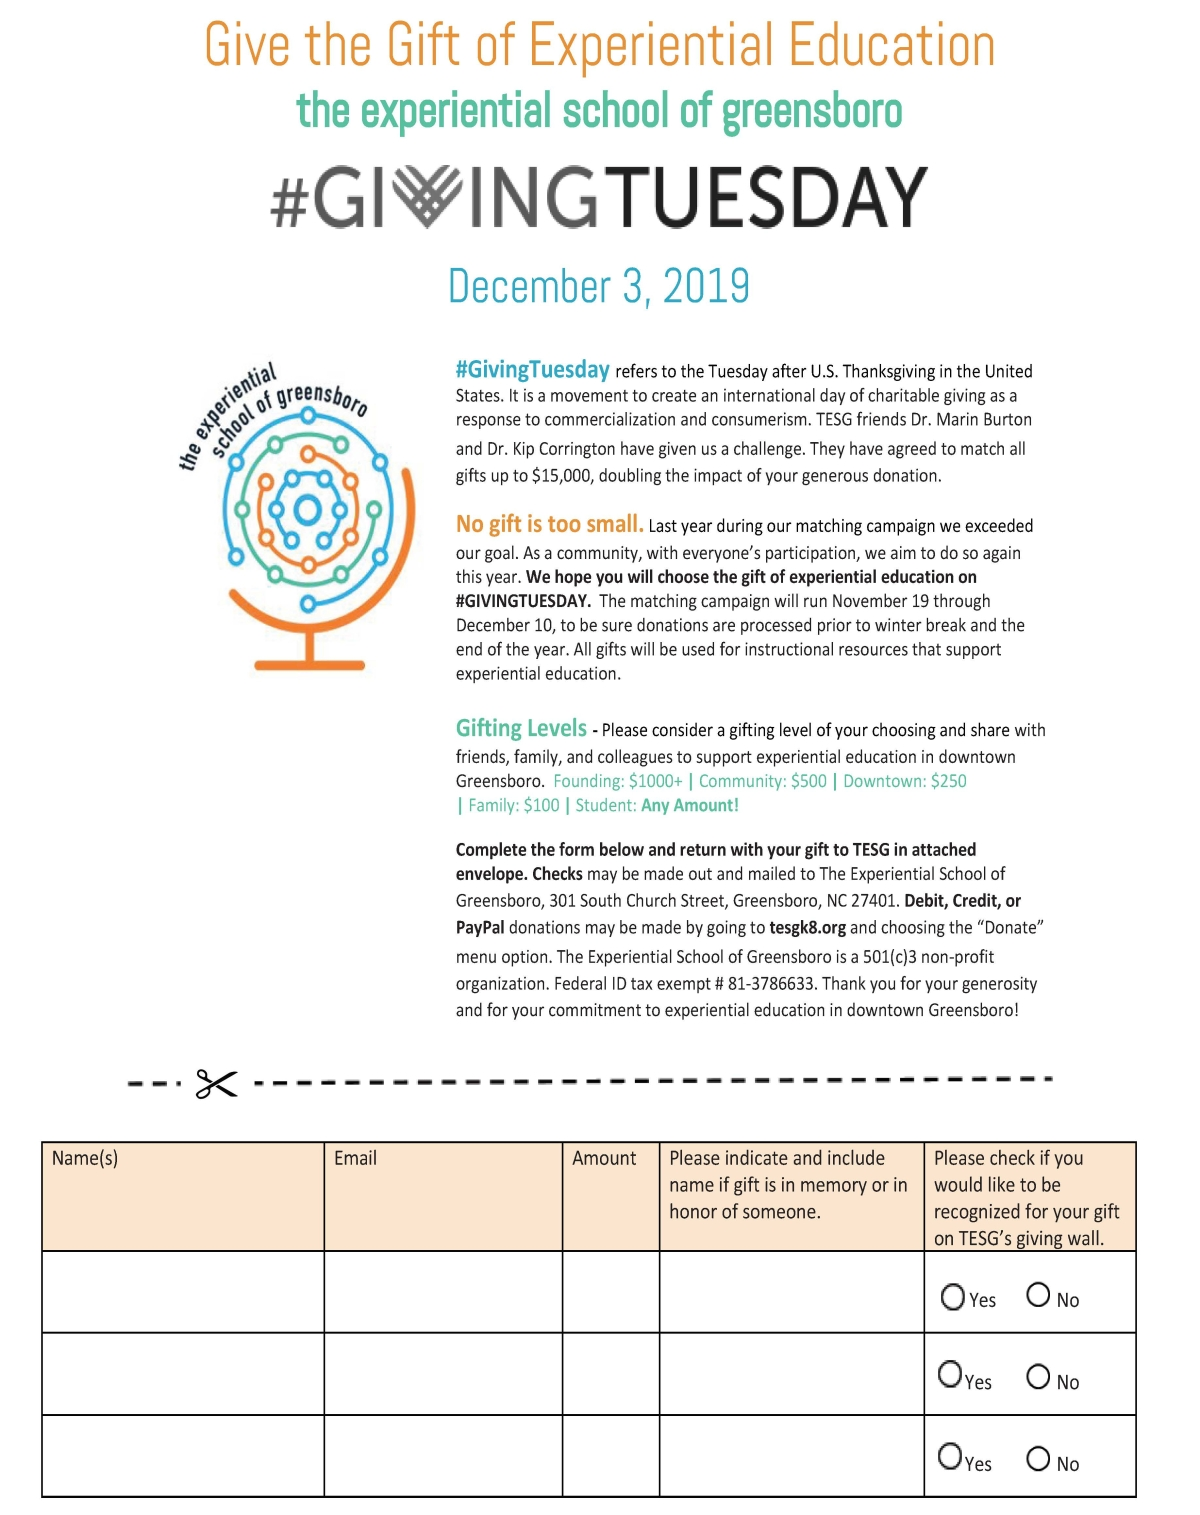 giving-tuesday-2019.jpg